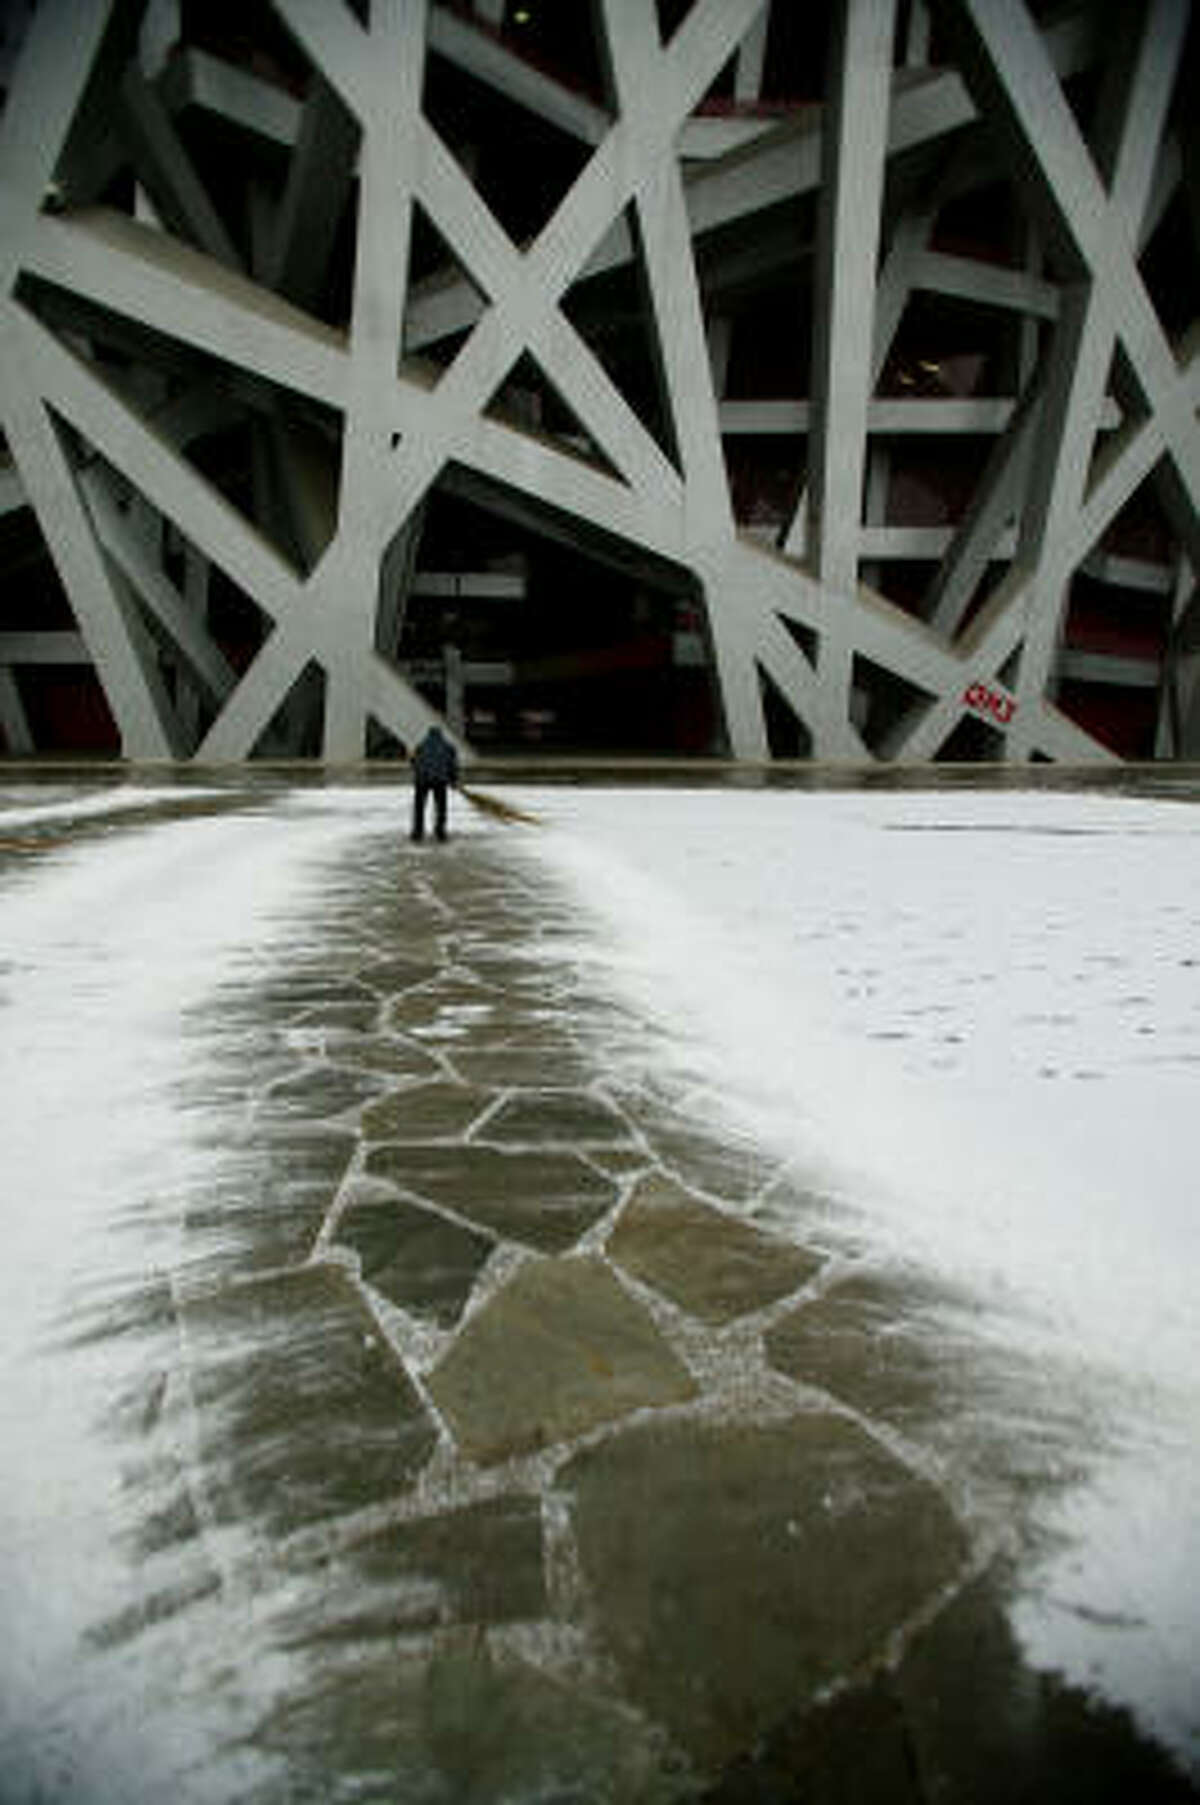 A cleaner sweeps snow outside the Bird's Nest on Wednesday in Beijing.